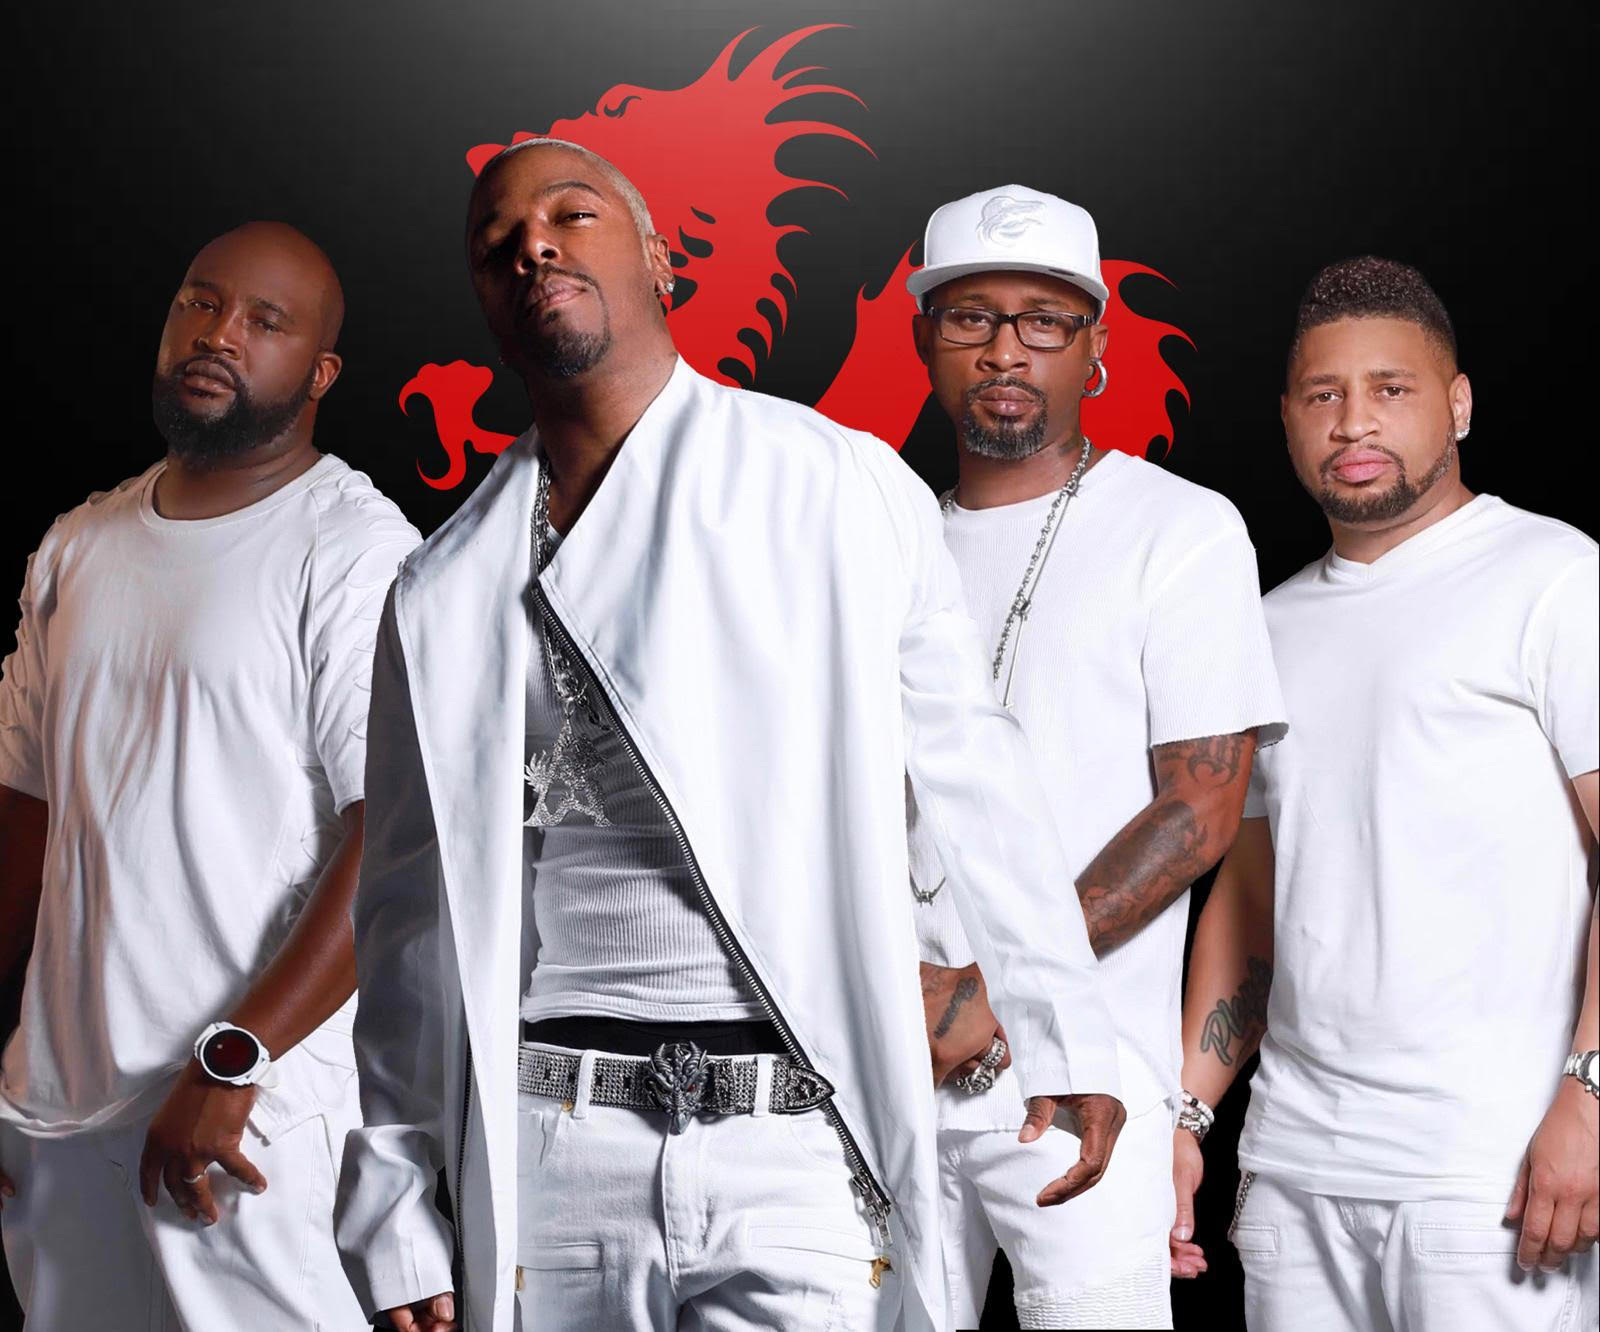 US Singers Joe, Brandy & Dru Hill Team Up For Their First Ever Joint UK Tour